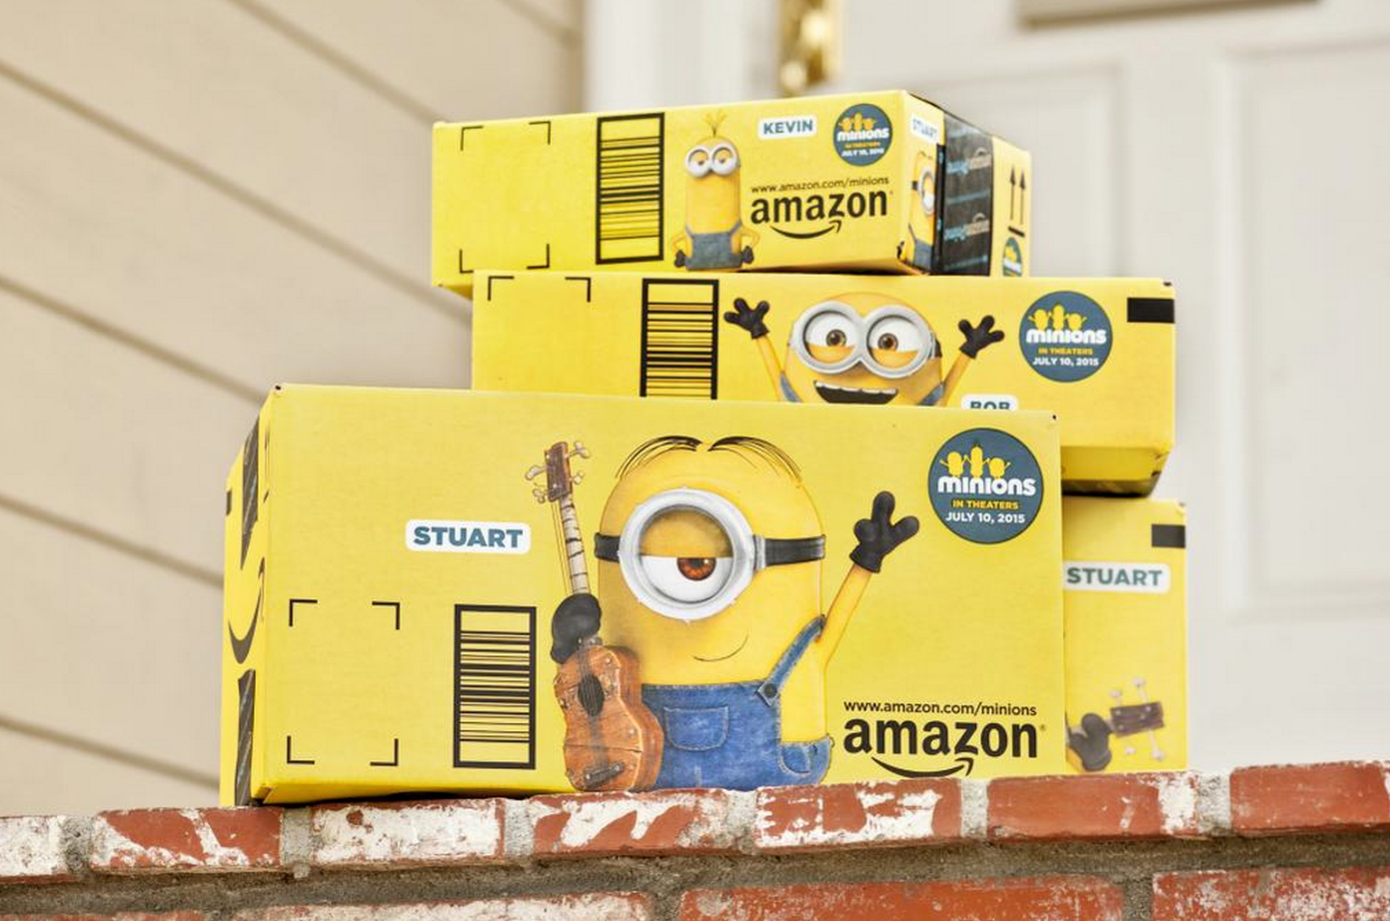 Minions and Amazon plot to take over the world. Will they succeed?